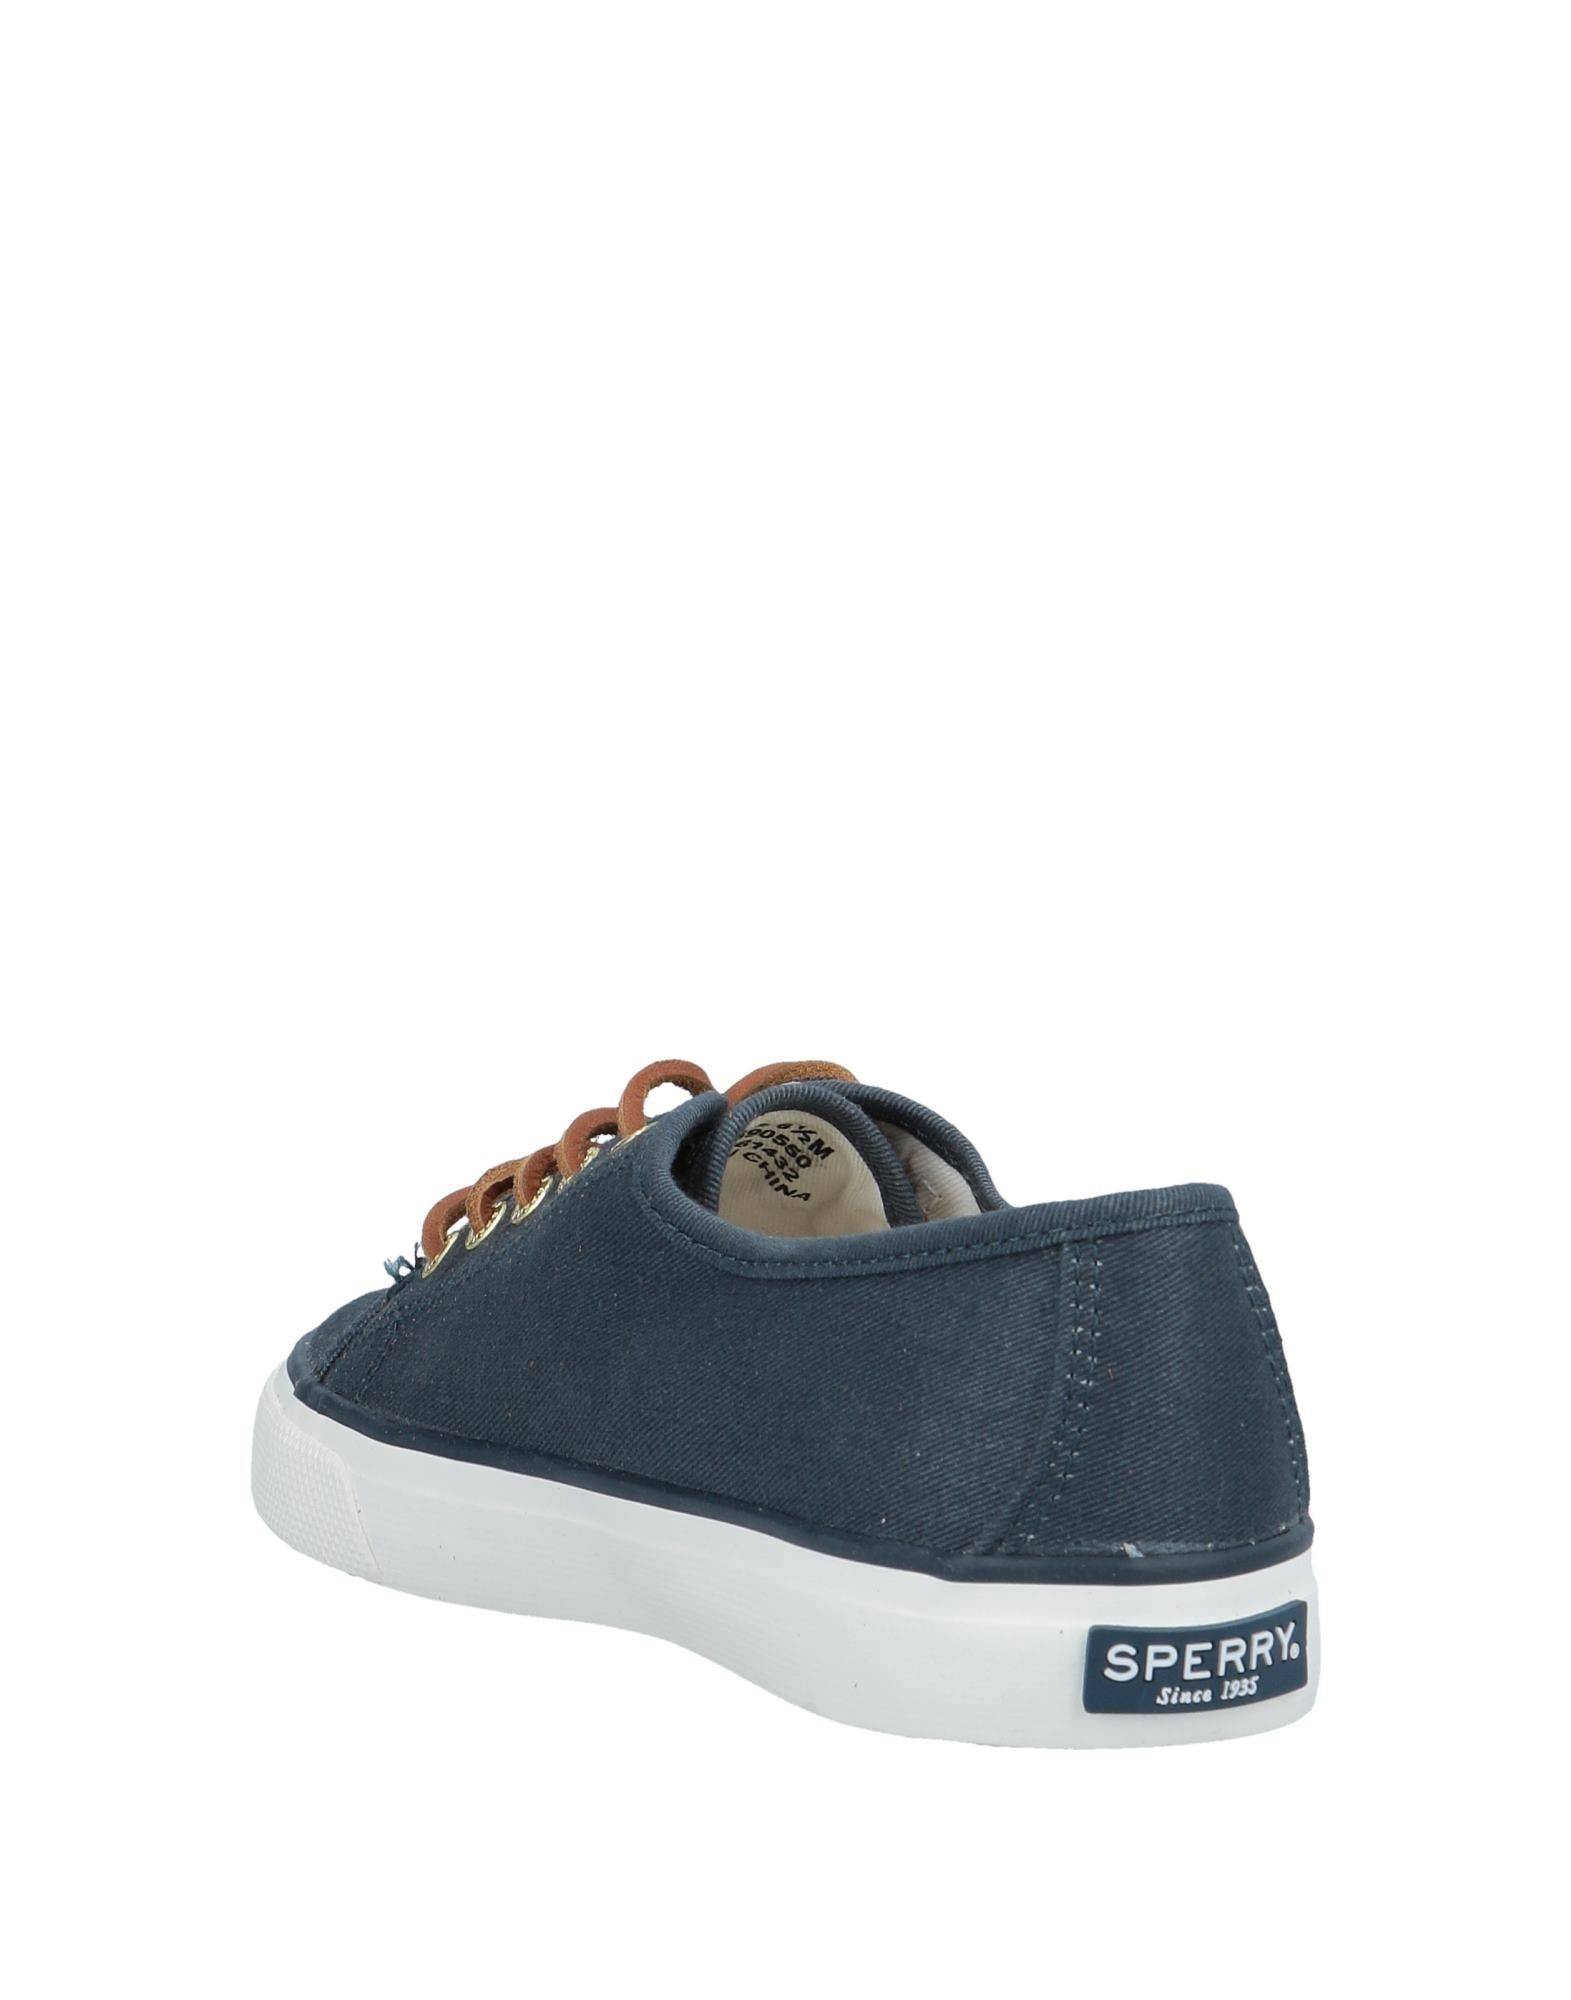 Sperry Top-Sider Sneakers - Women Sperry Top-Sider Sneakers online online online on  United Kingdom - 11581589FQ a127b4